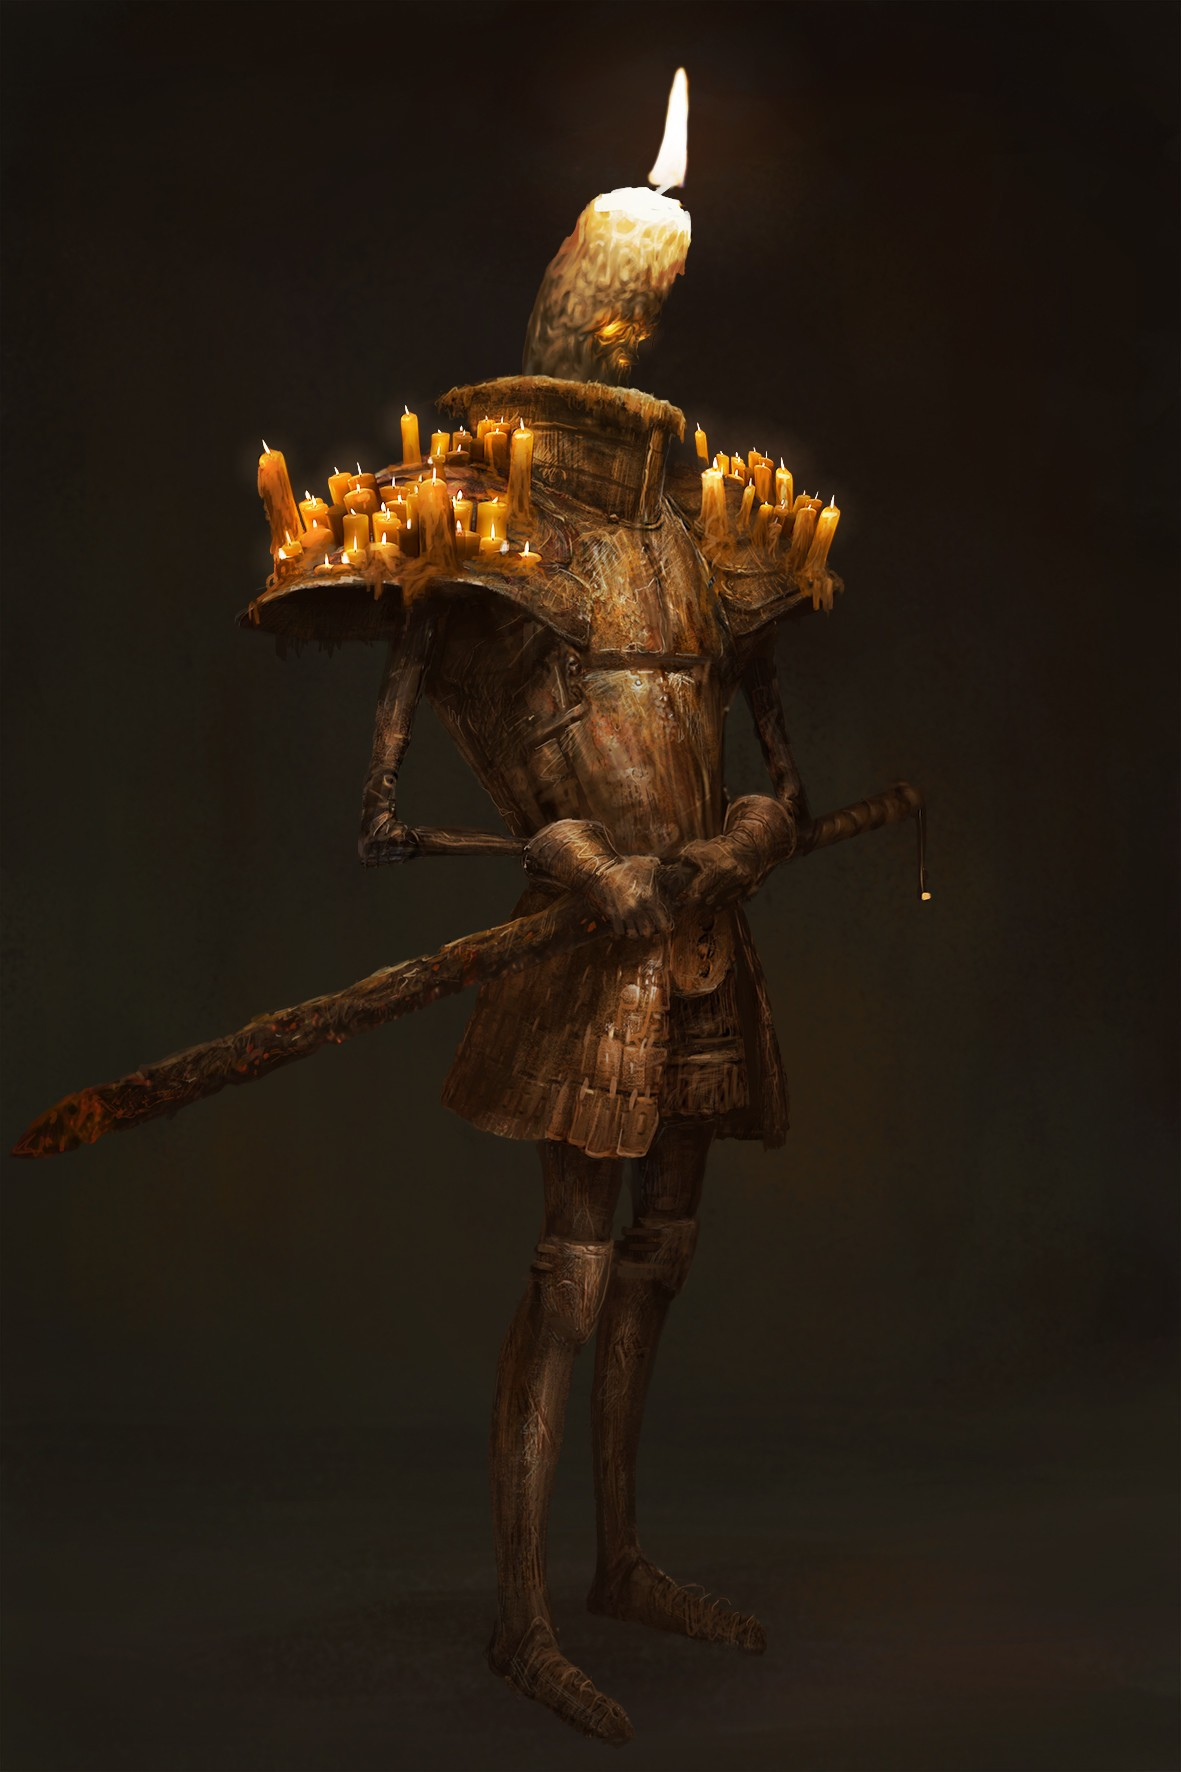 theo-guillot-candleknight par T.O.